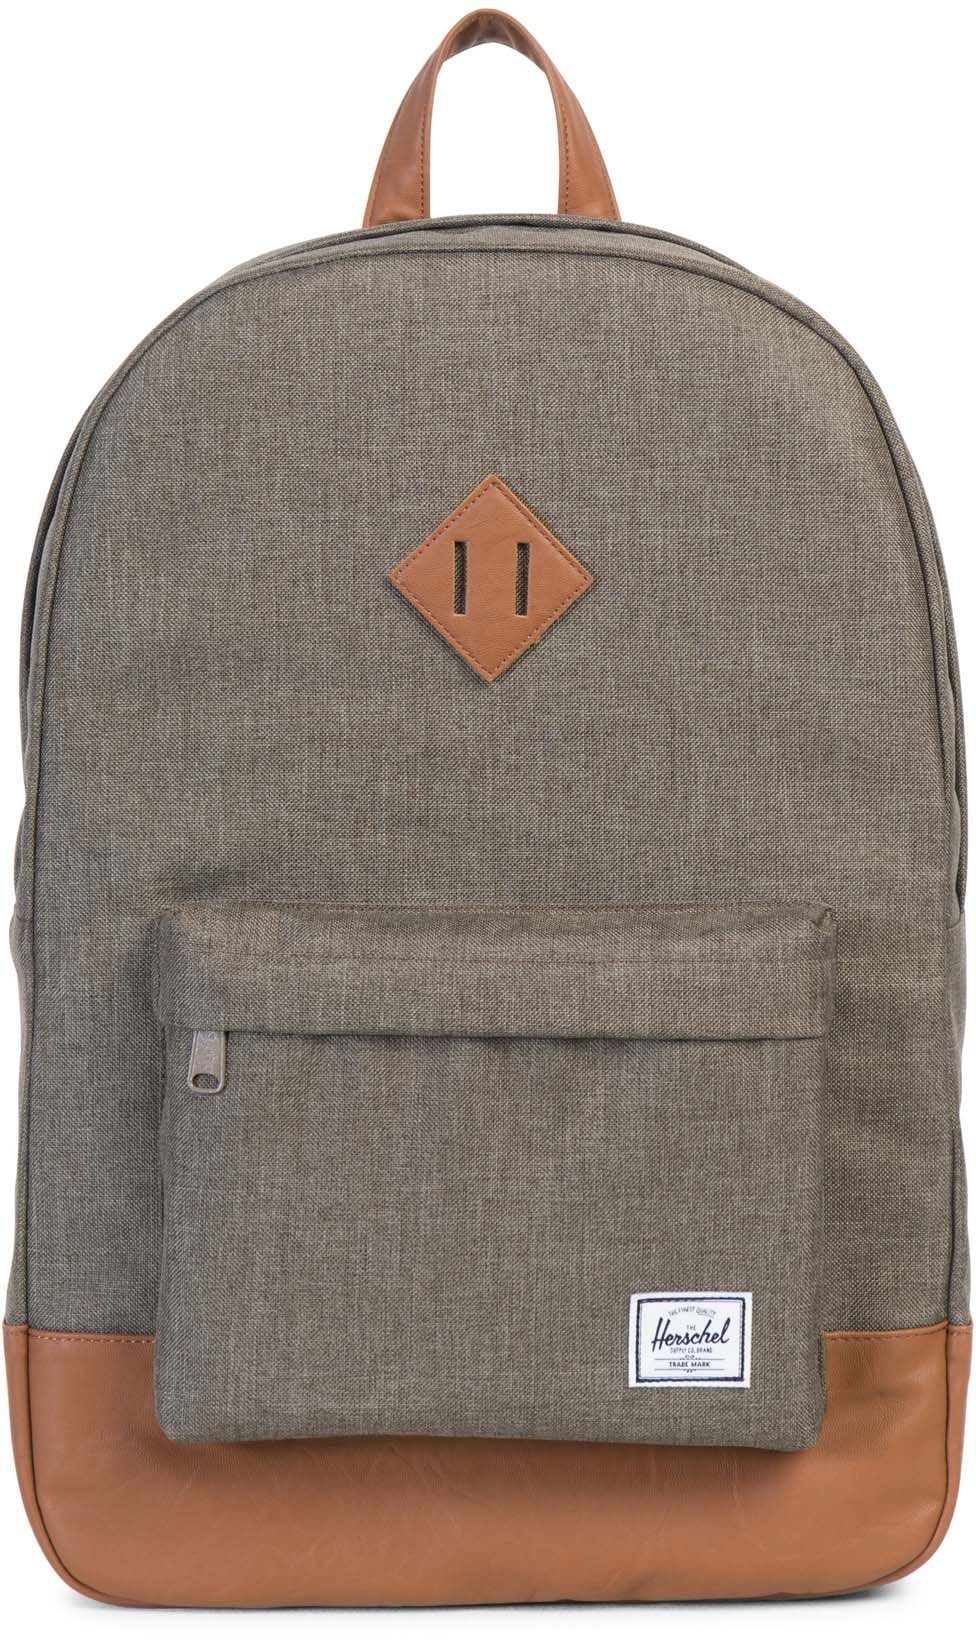 Herschel Rucksack mit Laptopfach, »Heritage Backpack, Canteen Crosshatch«